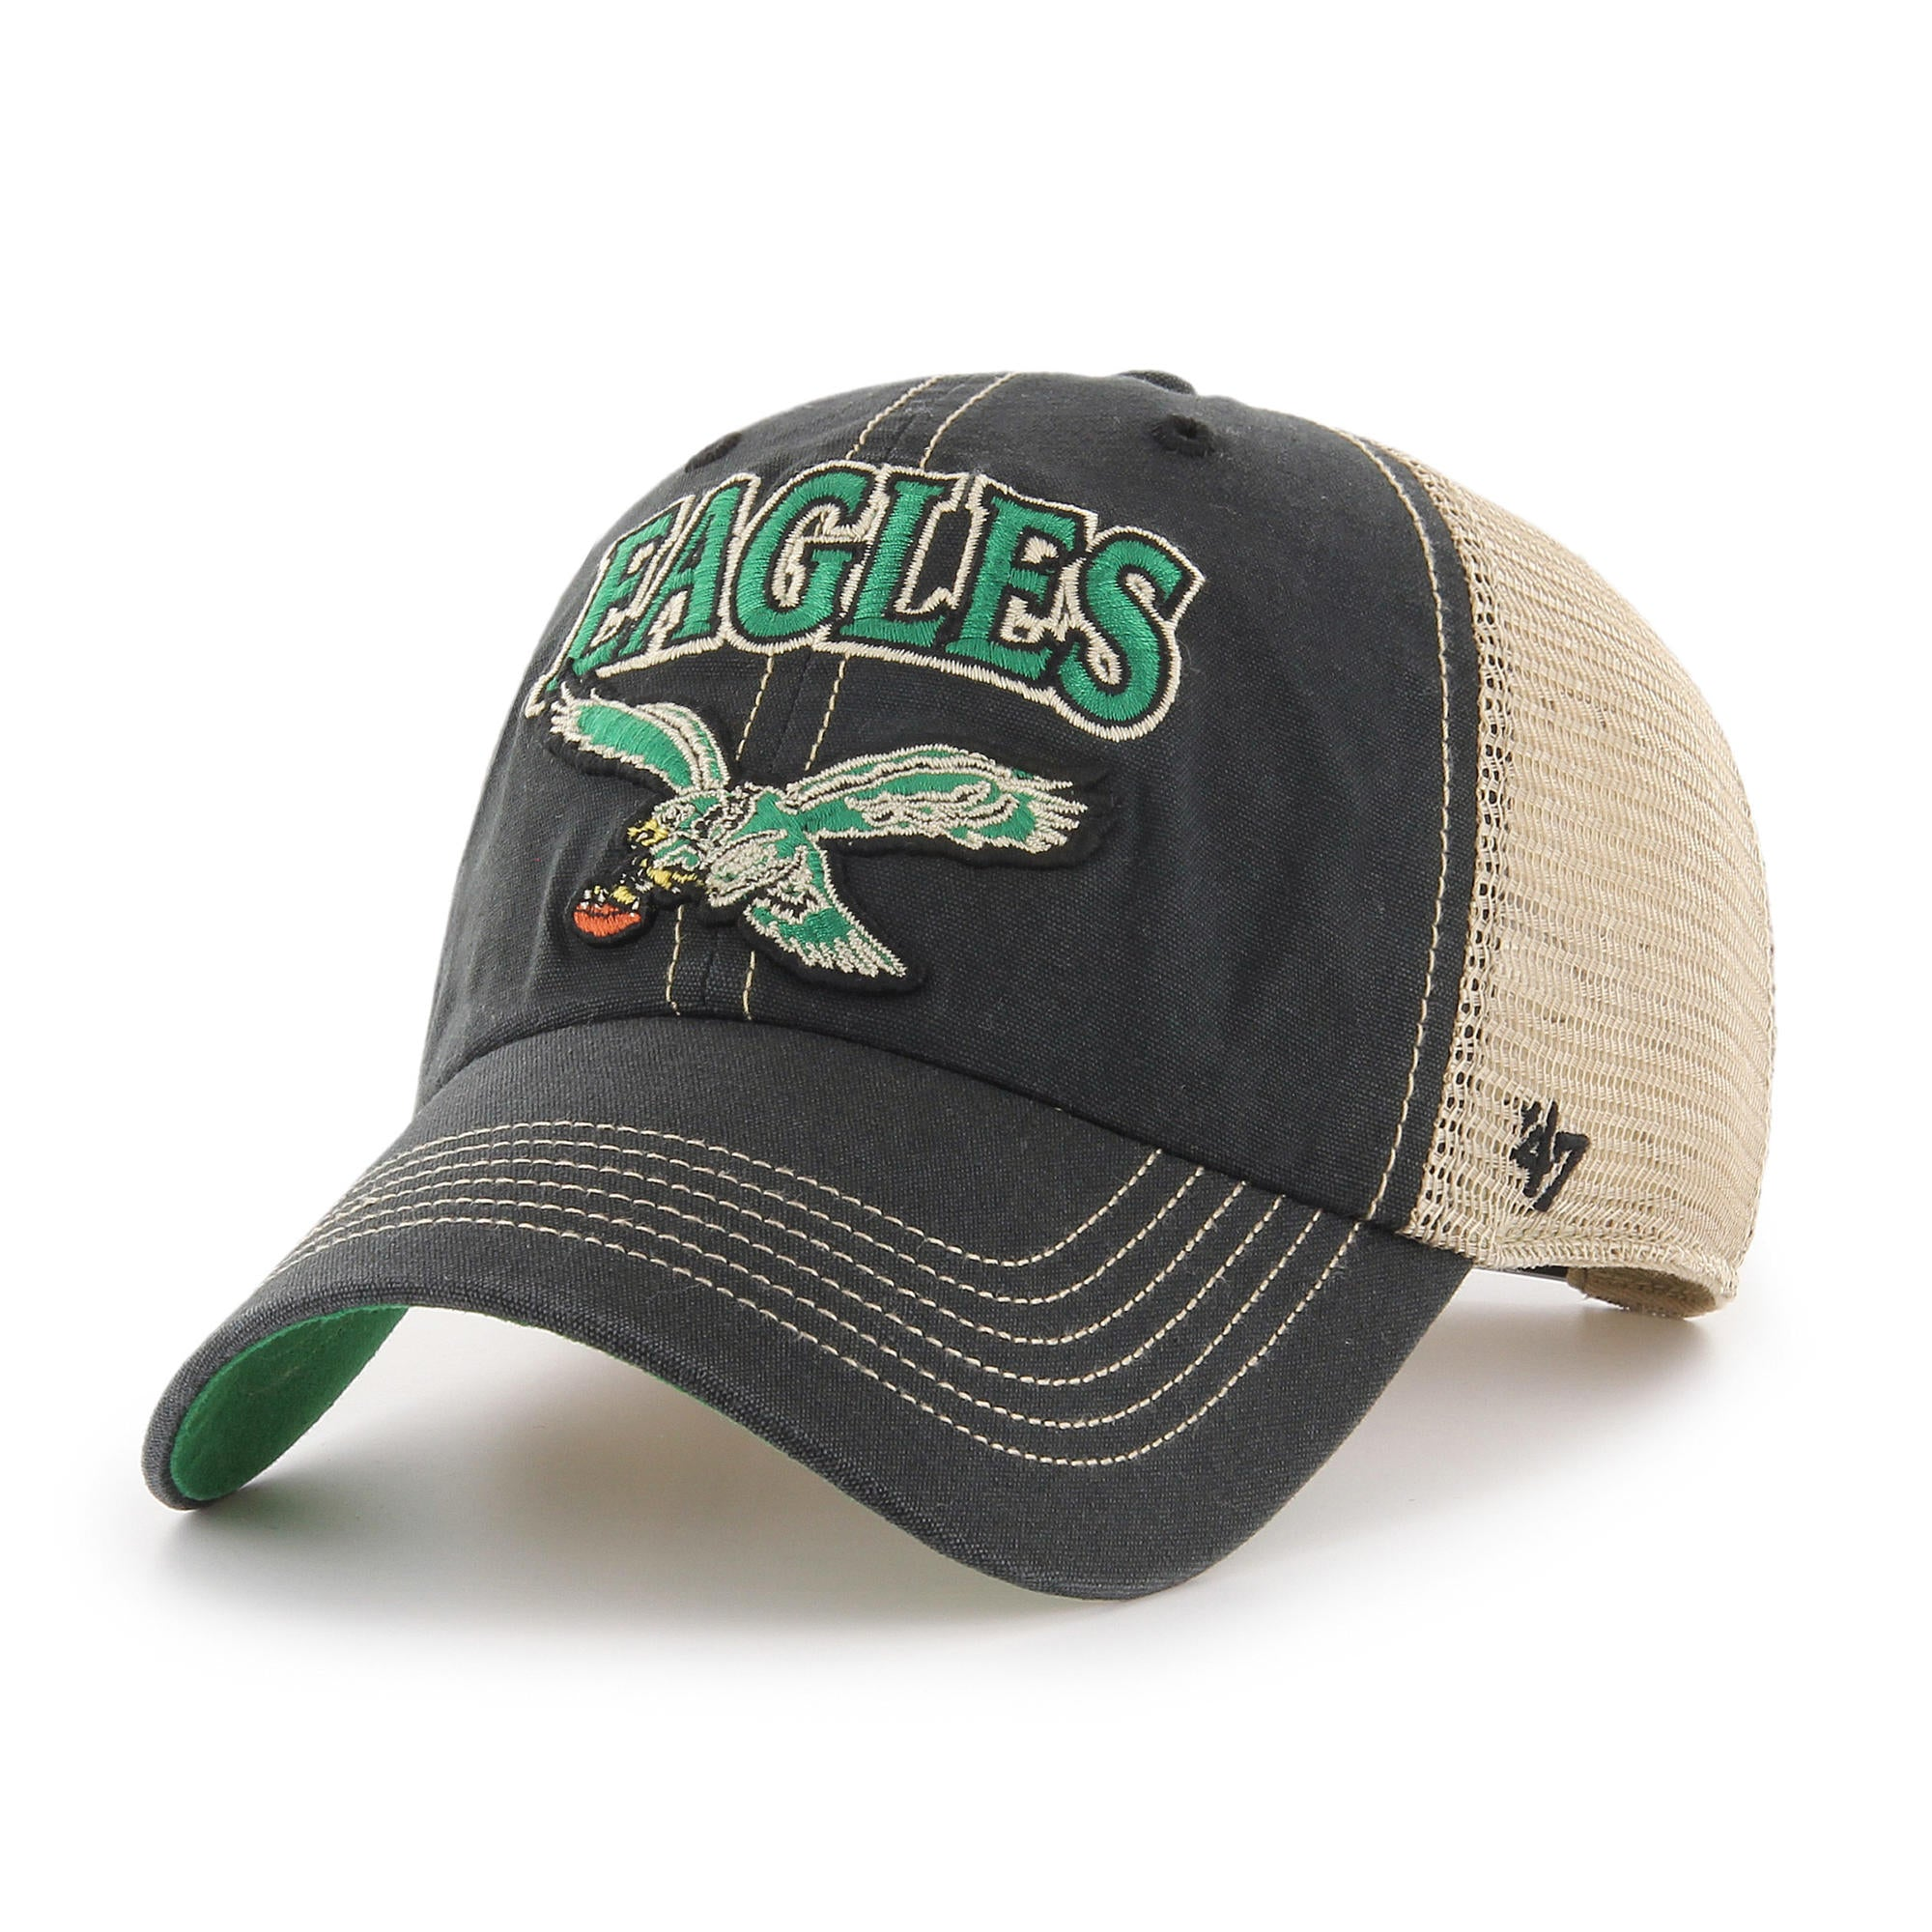 Philadelphia Eagles Tuscaloosa Meshback Clean Up Logo Hat dd10d6253